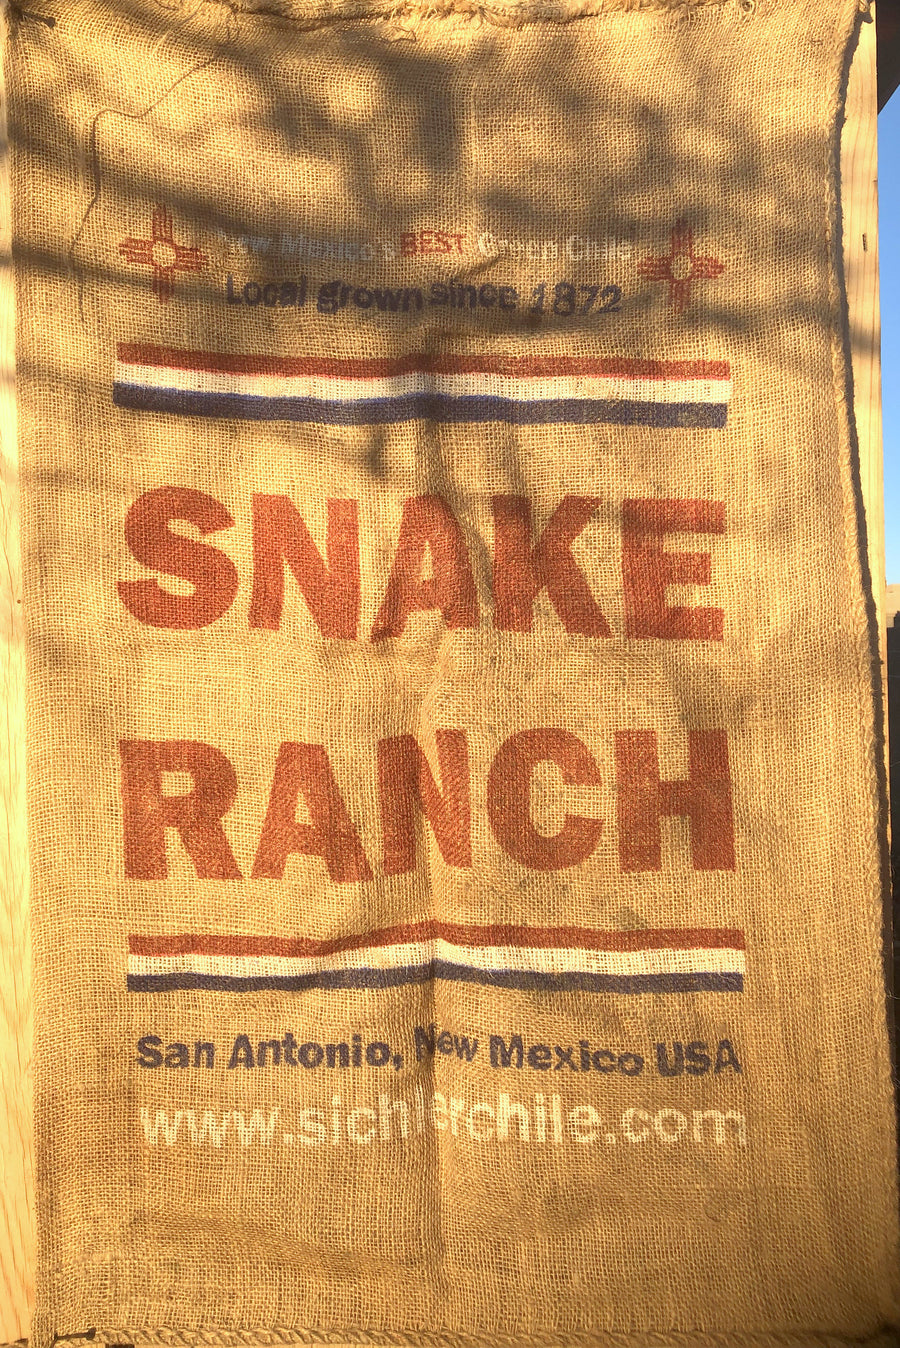 Snake ranch chile sacks 1 dozen